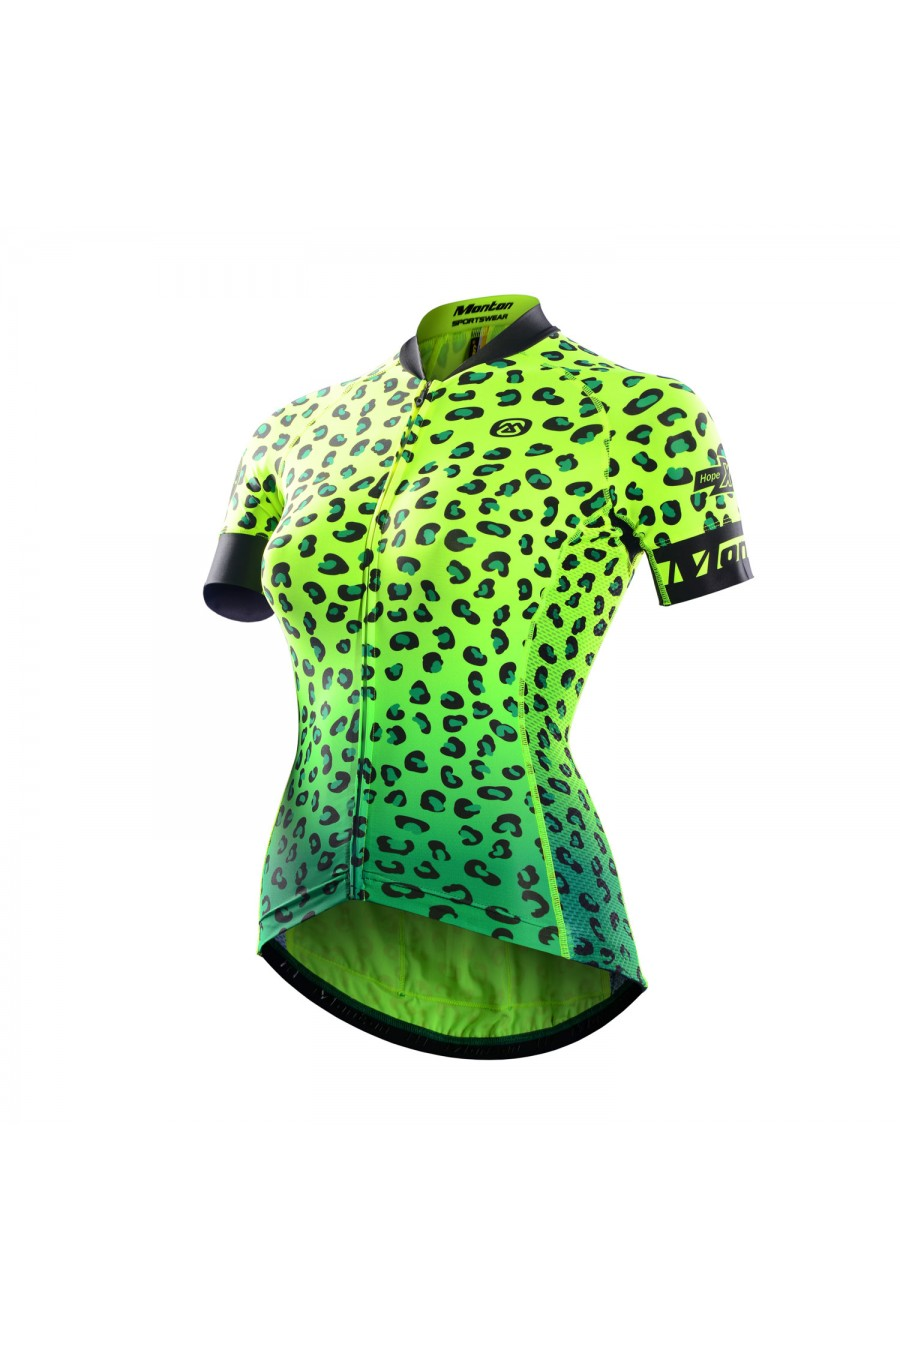 Monton 2016 Womens Short Sleeve Race Fit Fluorescent Cycling Jersey Online Sale